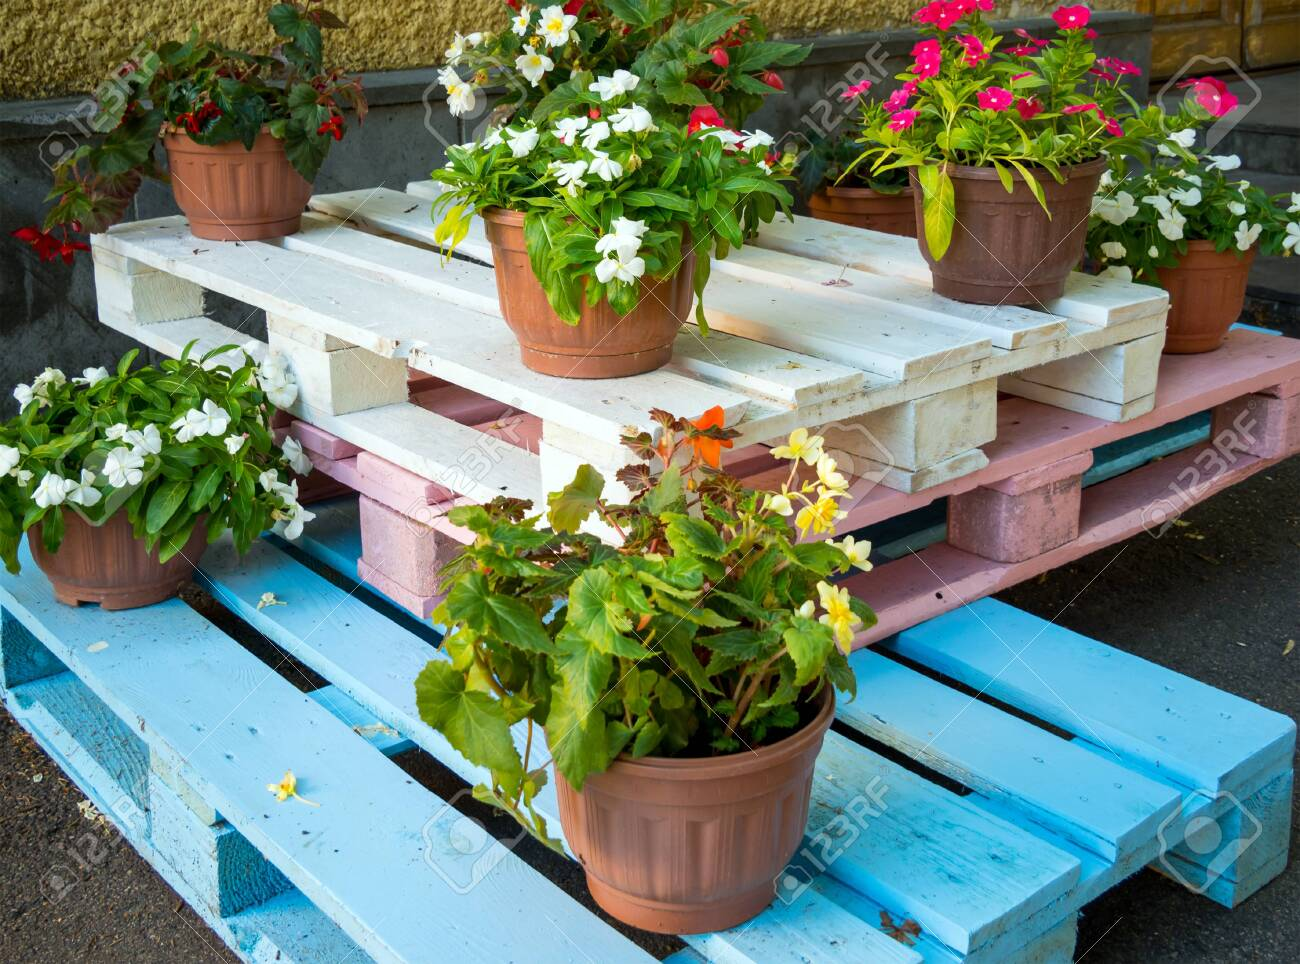 123RF.com & Flower pots stand on wooden pallets painted in different colors